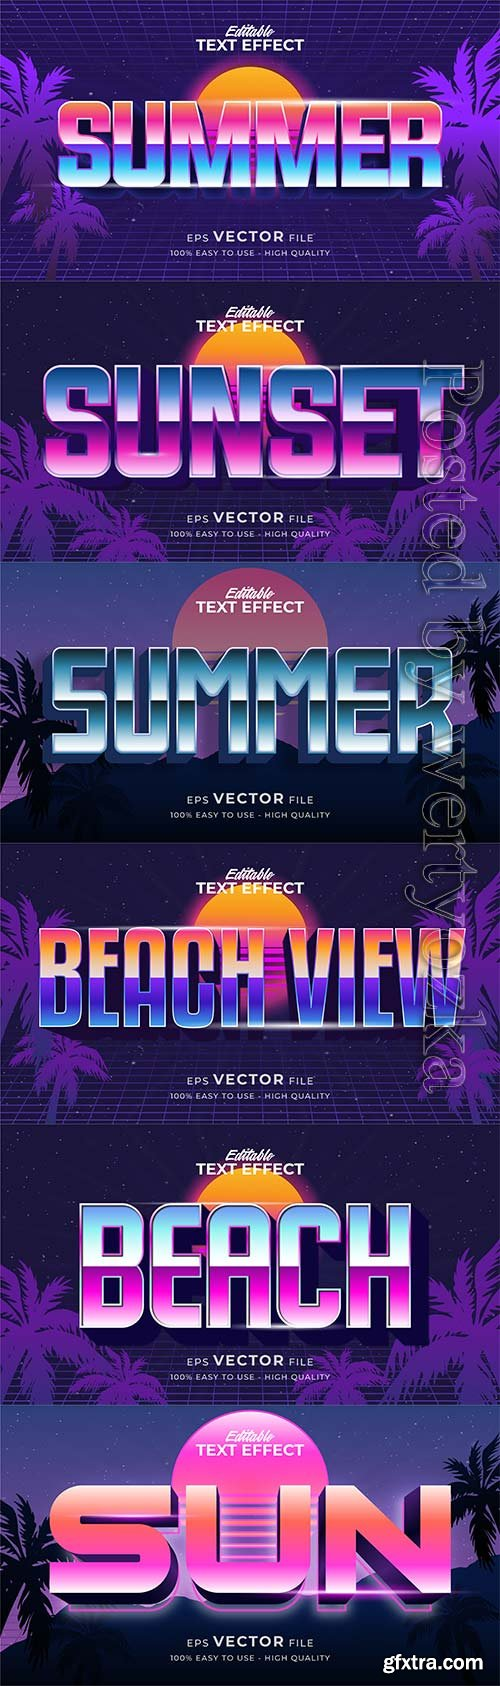 Text style effect, retro summer text in grunge style vol 4